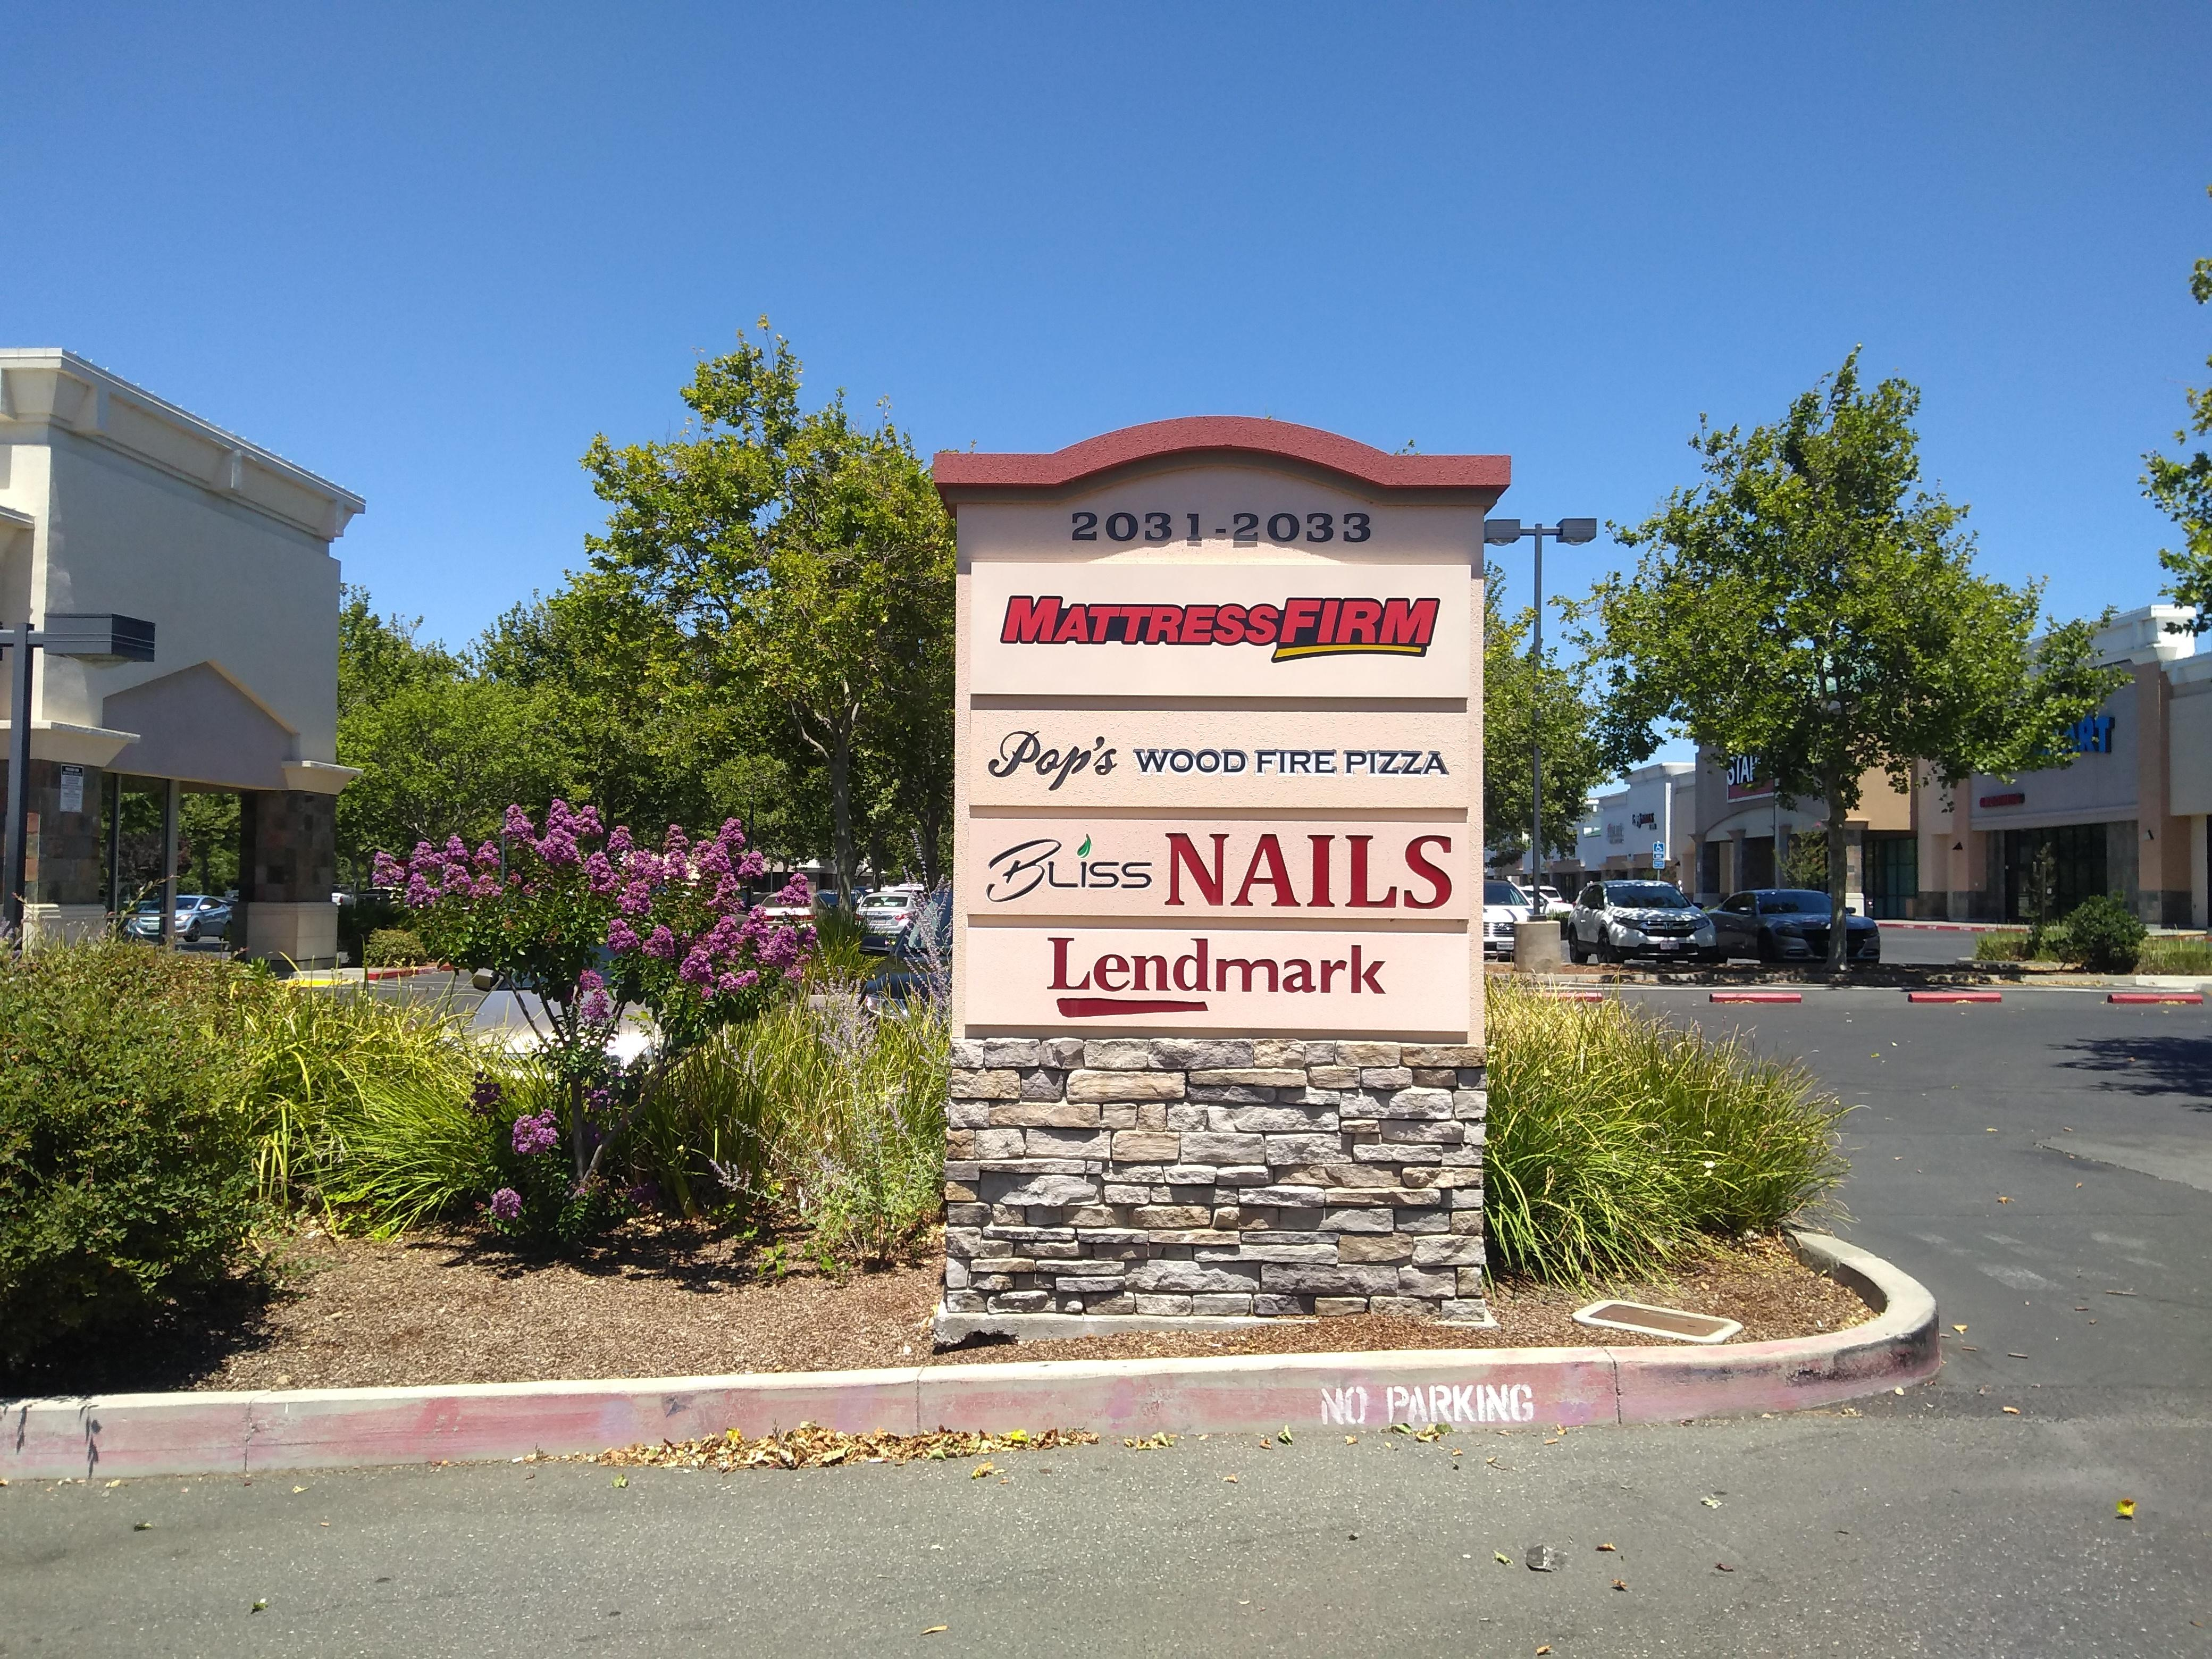 Mattress Firm Chico Forest Ave image 3